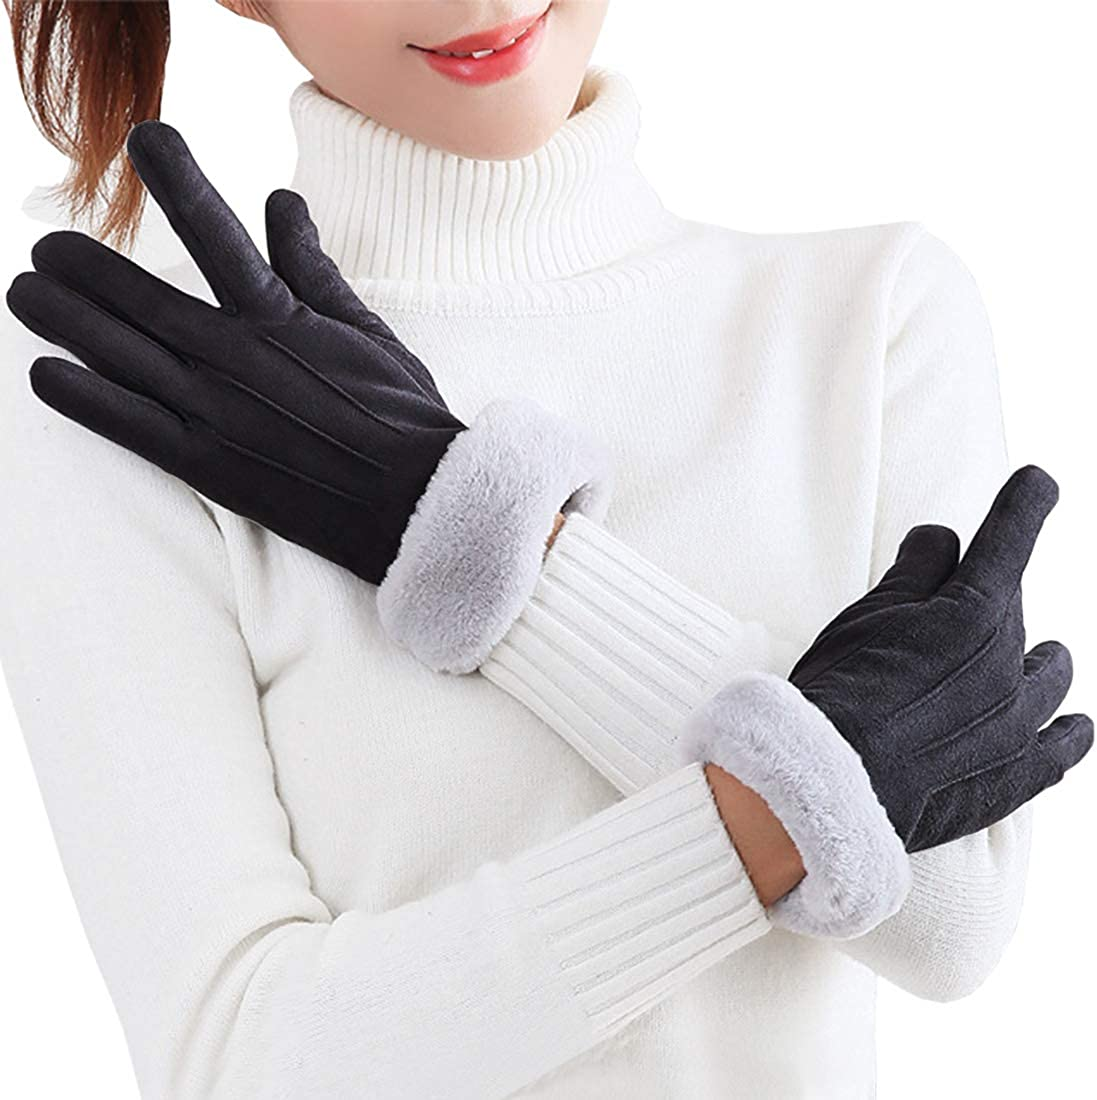 Marte Vanci Women Winter Warm Gloves Touch Screen Gloves Windproof Texting Gloves For Driving Hiking Running Christmas Gifts